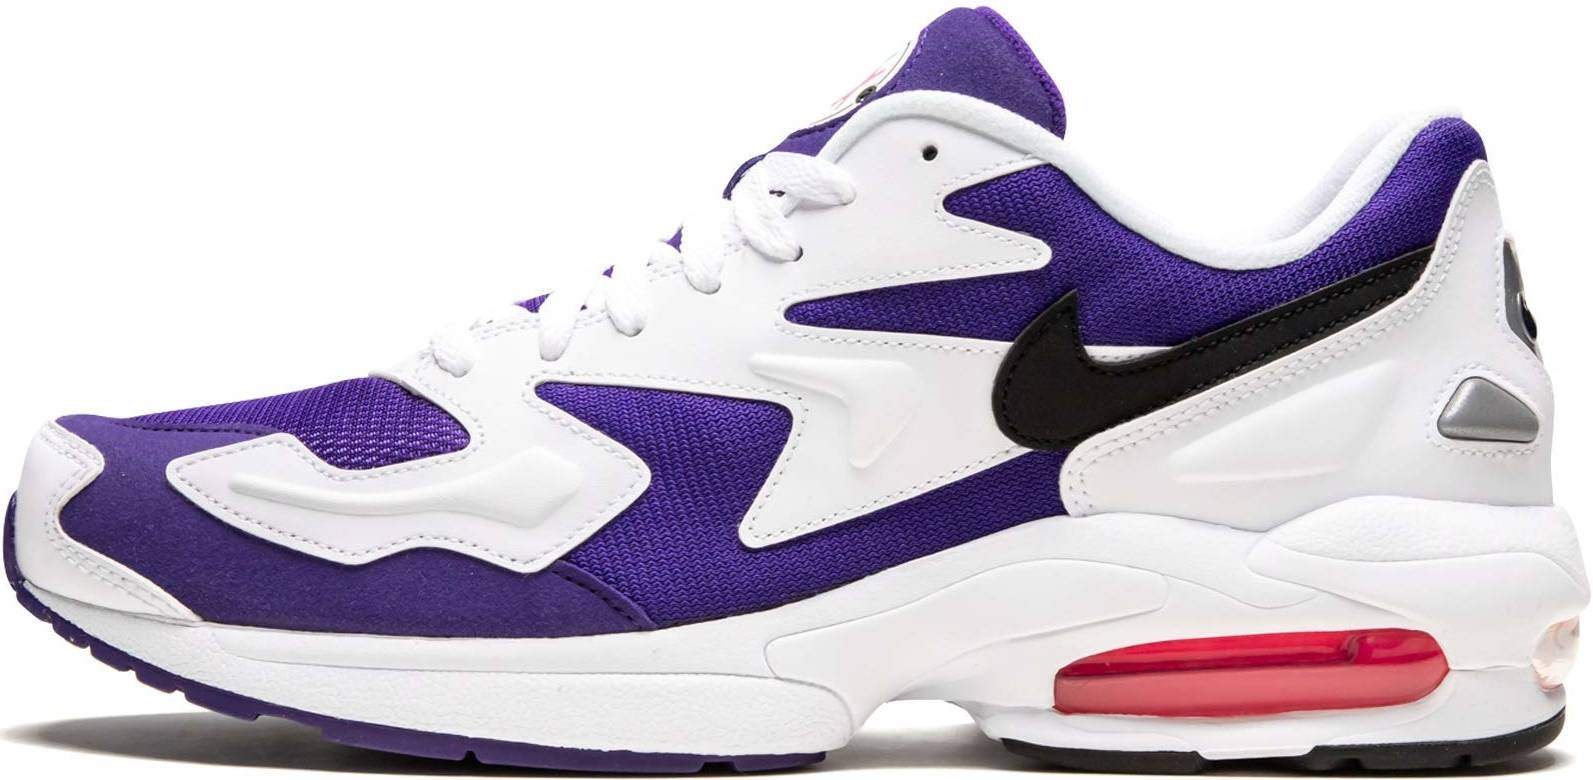 Conceder Estándar pastor  Save 24% on Purple Nike Sneakers (35 Models in Stock) | RunRepeat